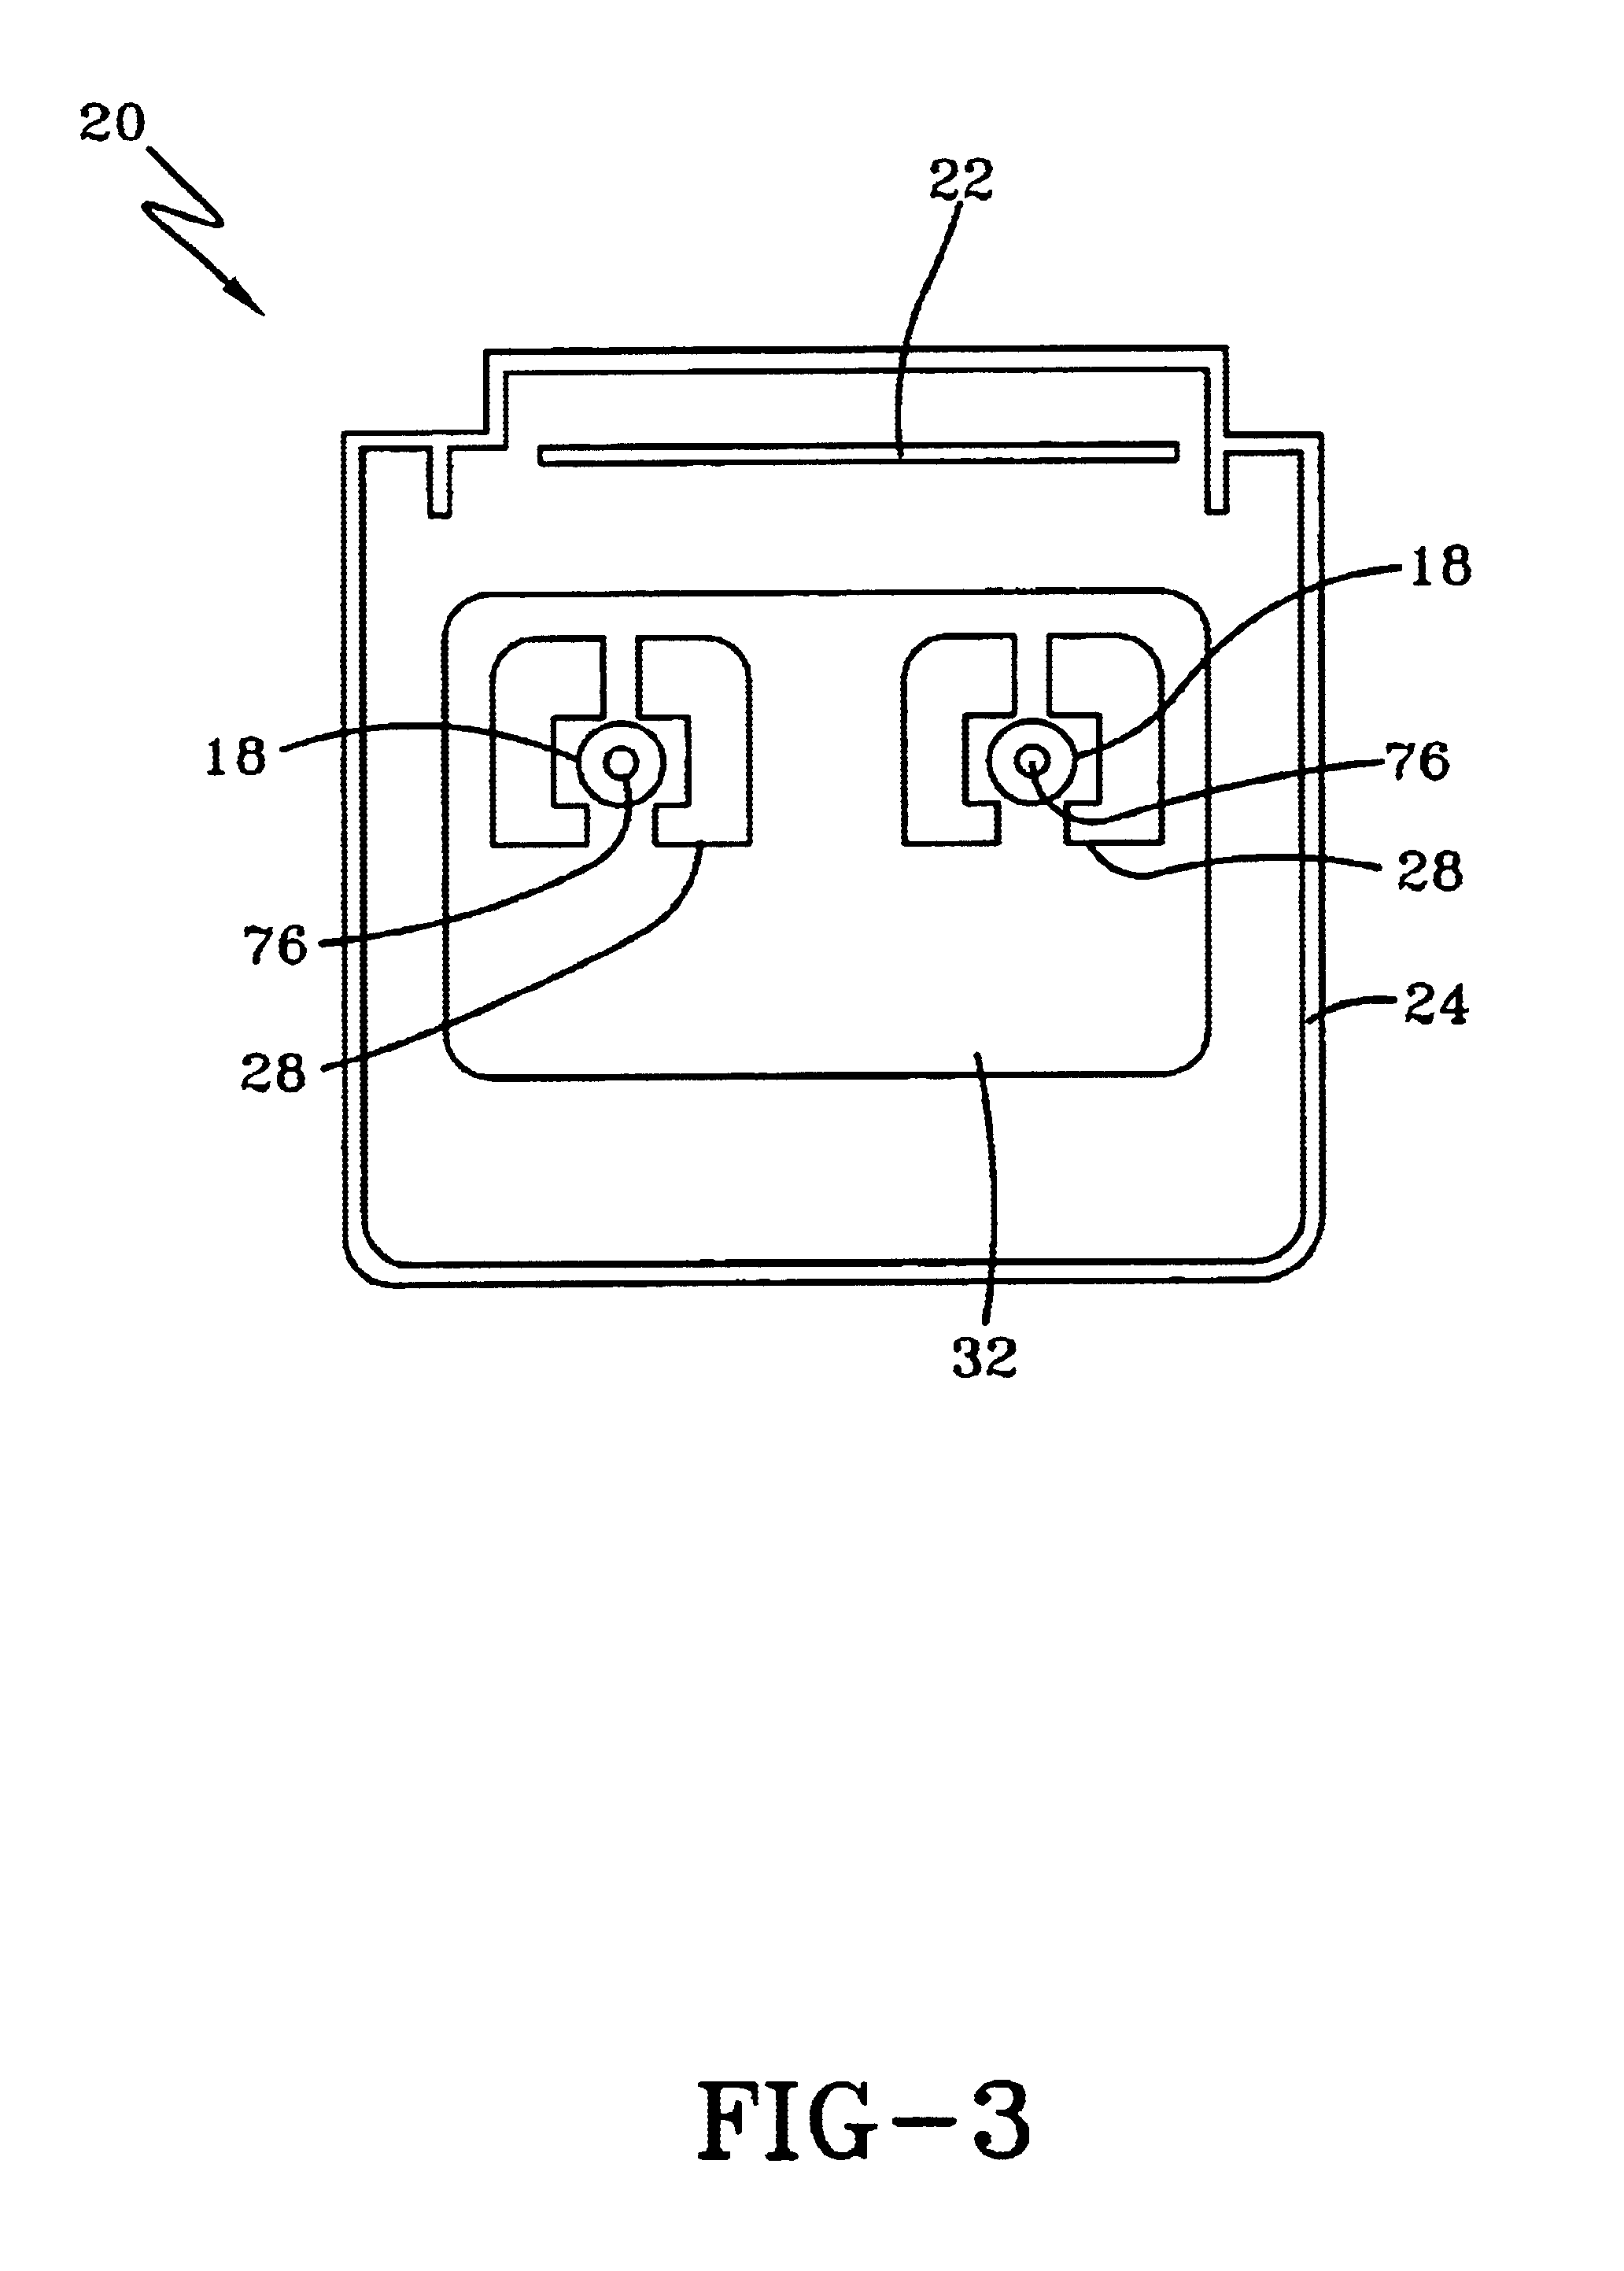 patent us6808418 dummy plug for wiring harness google patents patent drawing